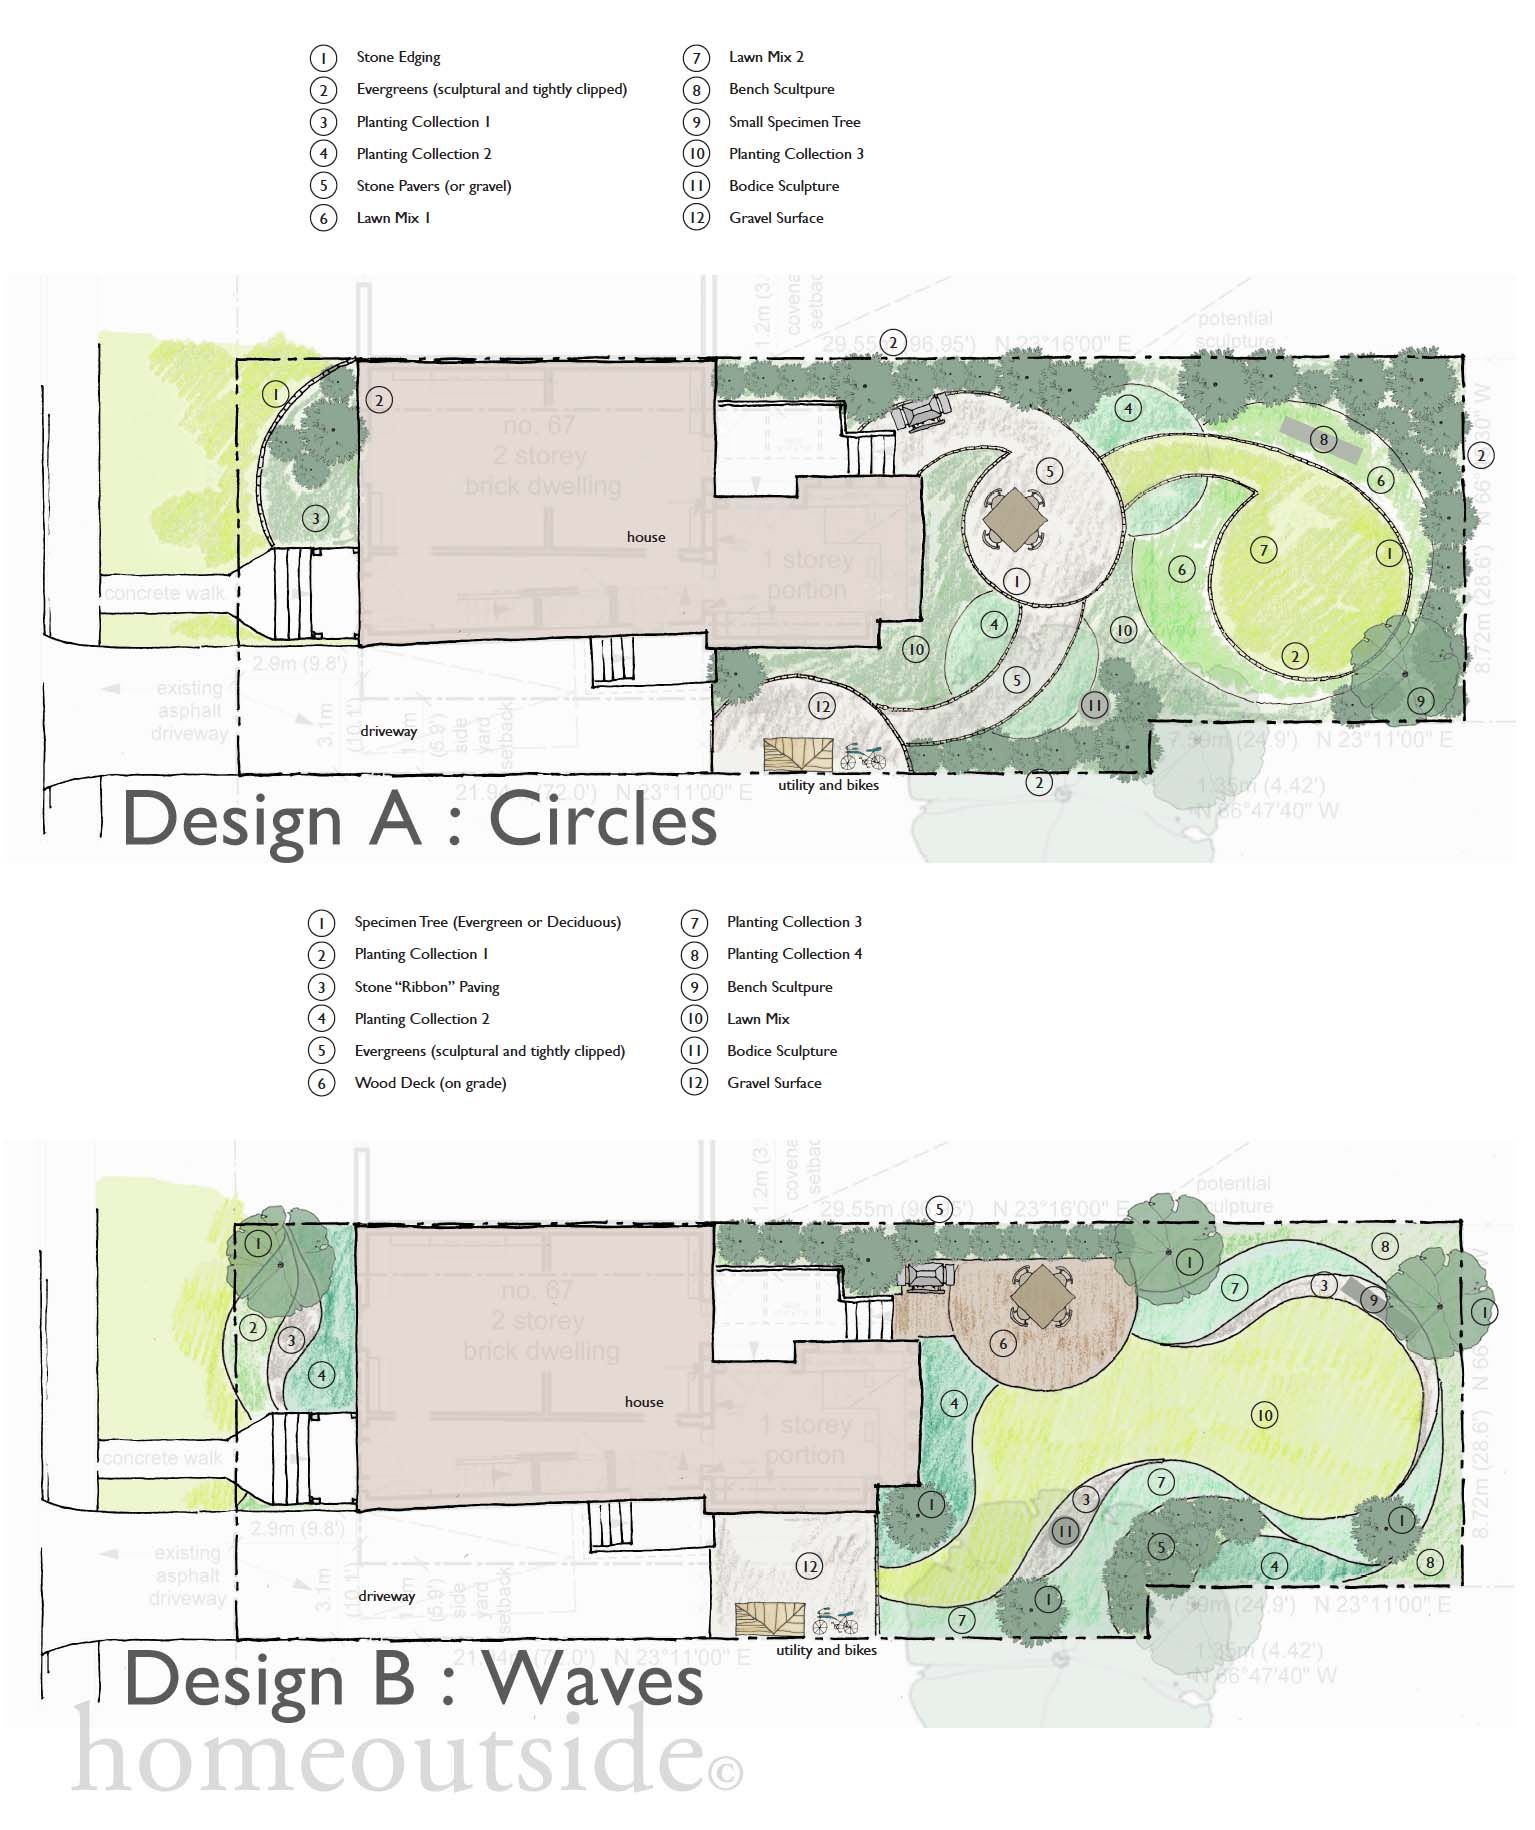 Two designs by Home Outside Design online landscape design service. Both  inspired by the images - Two Designs By Home Outside Design Online Landscape Design Service